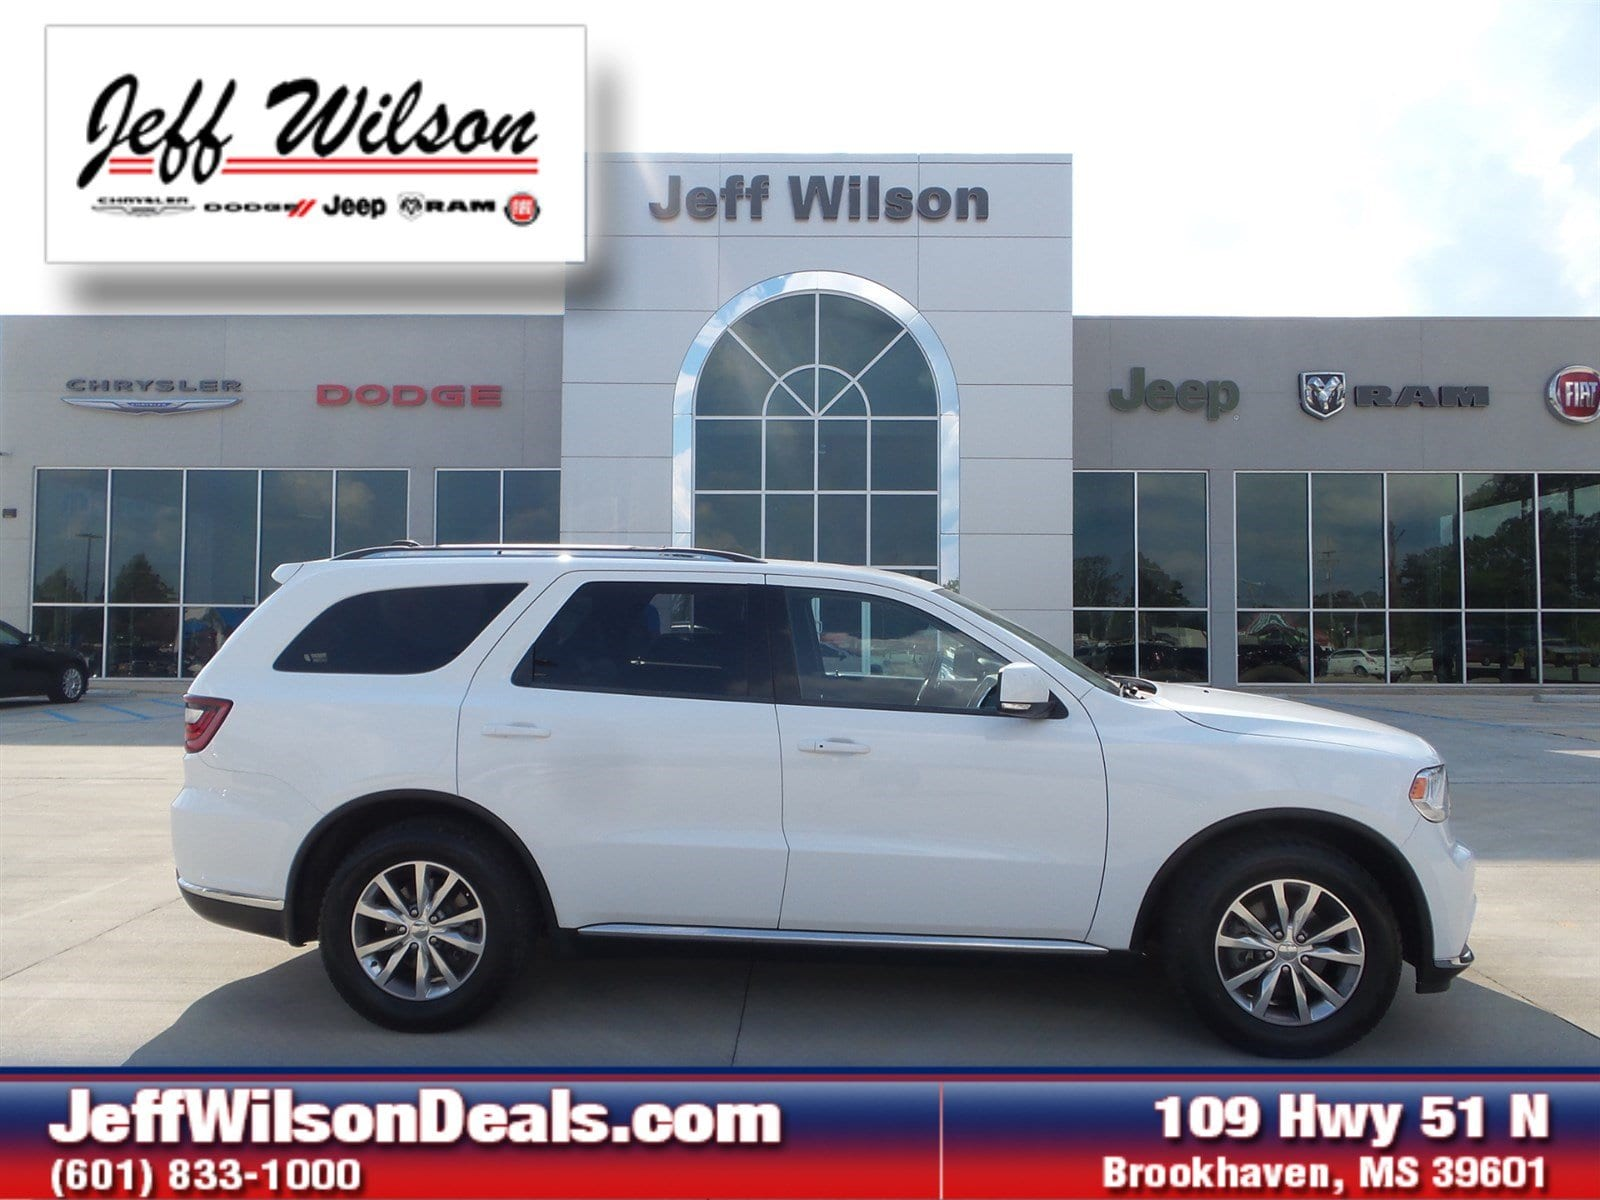 used cars on sale featured used vehicles car lots in jackson ms no credit check